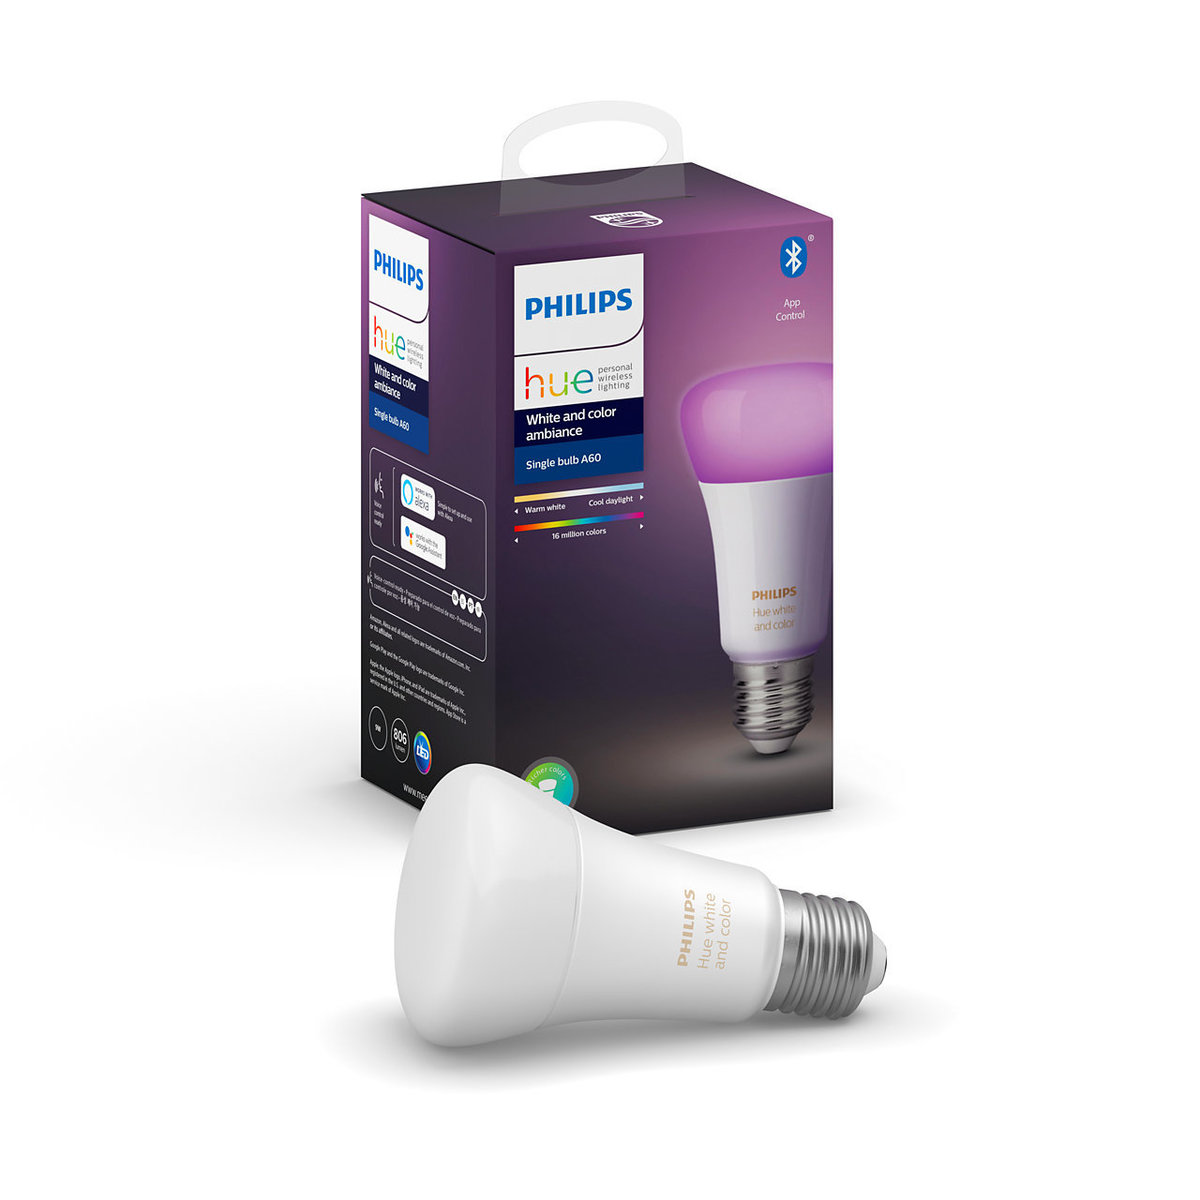 Latest Extra Bluetooth Hue White and Color Ambiance 白色/彩色 3.0 E27 燈膽 (行貨)